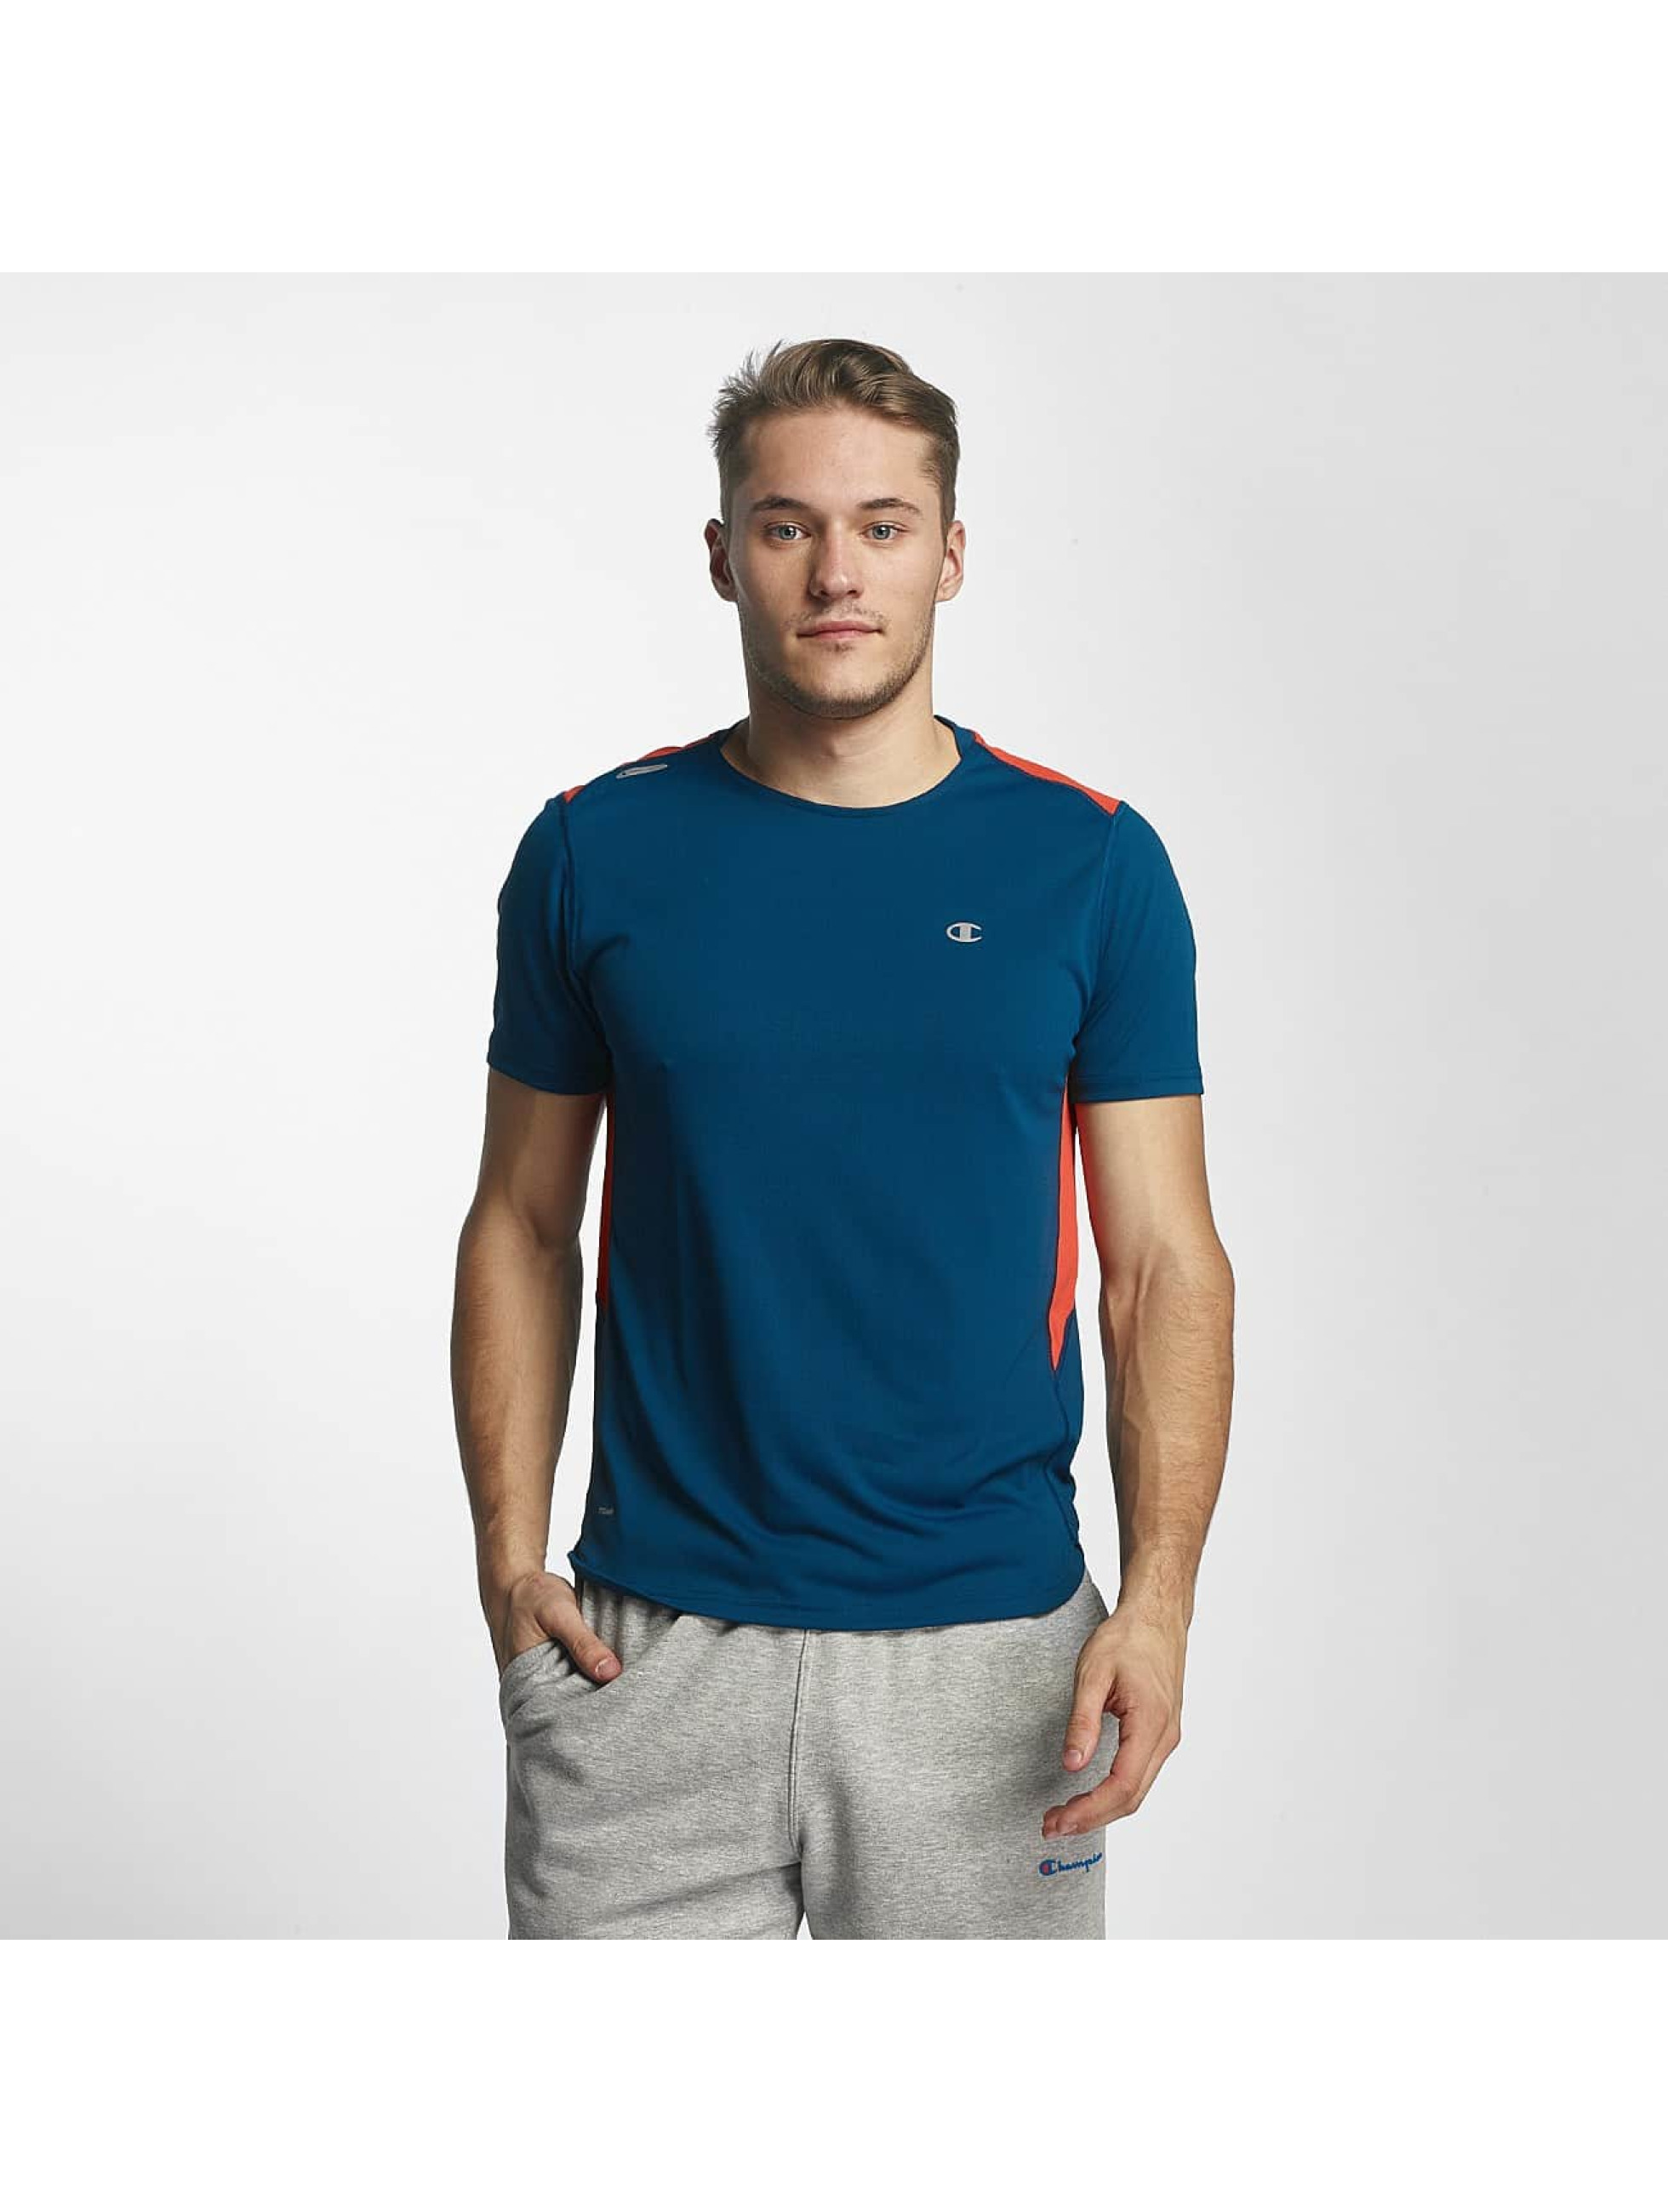 Champion Athletics Männer T-Shirt Freedom in blau